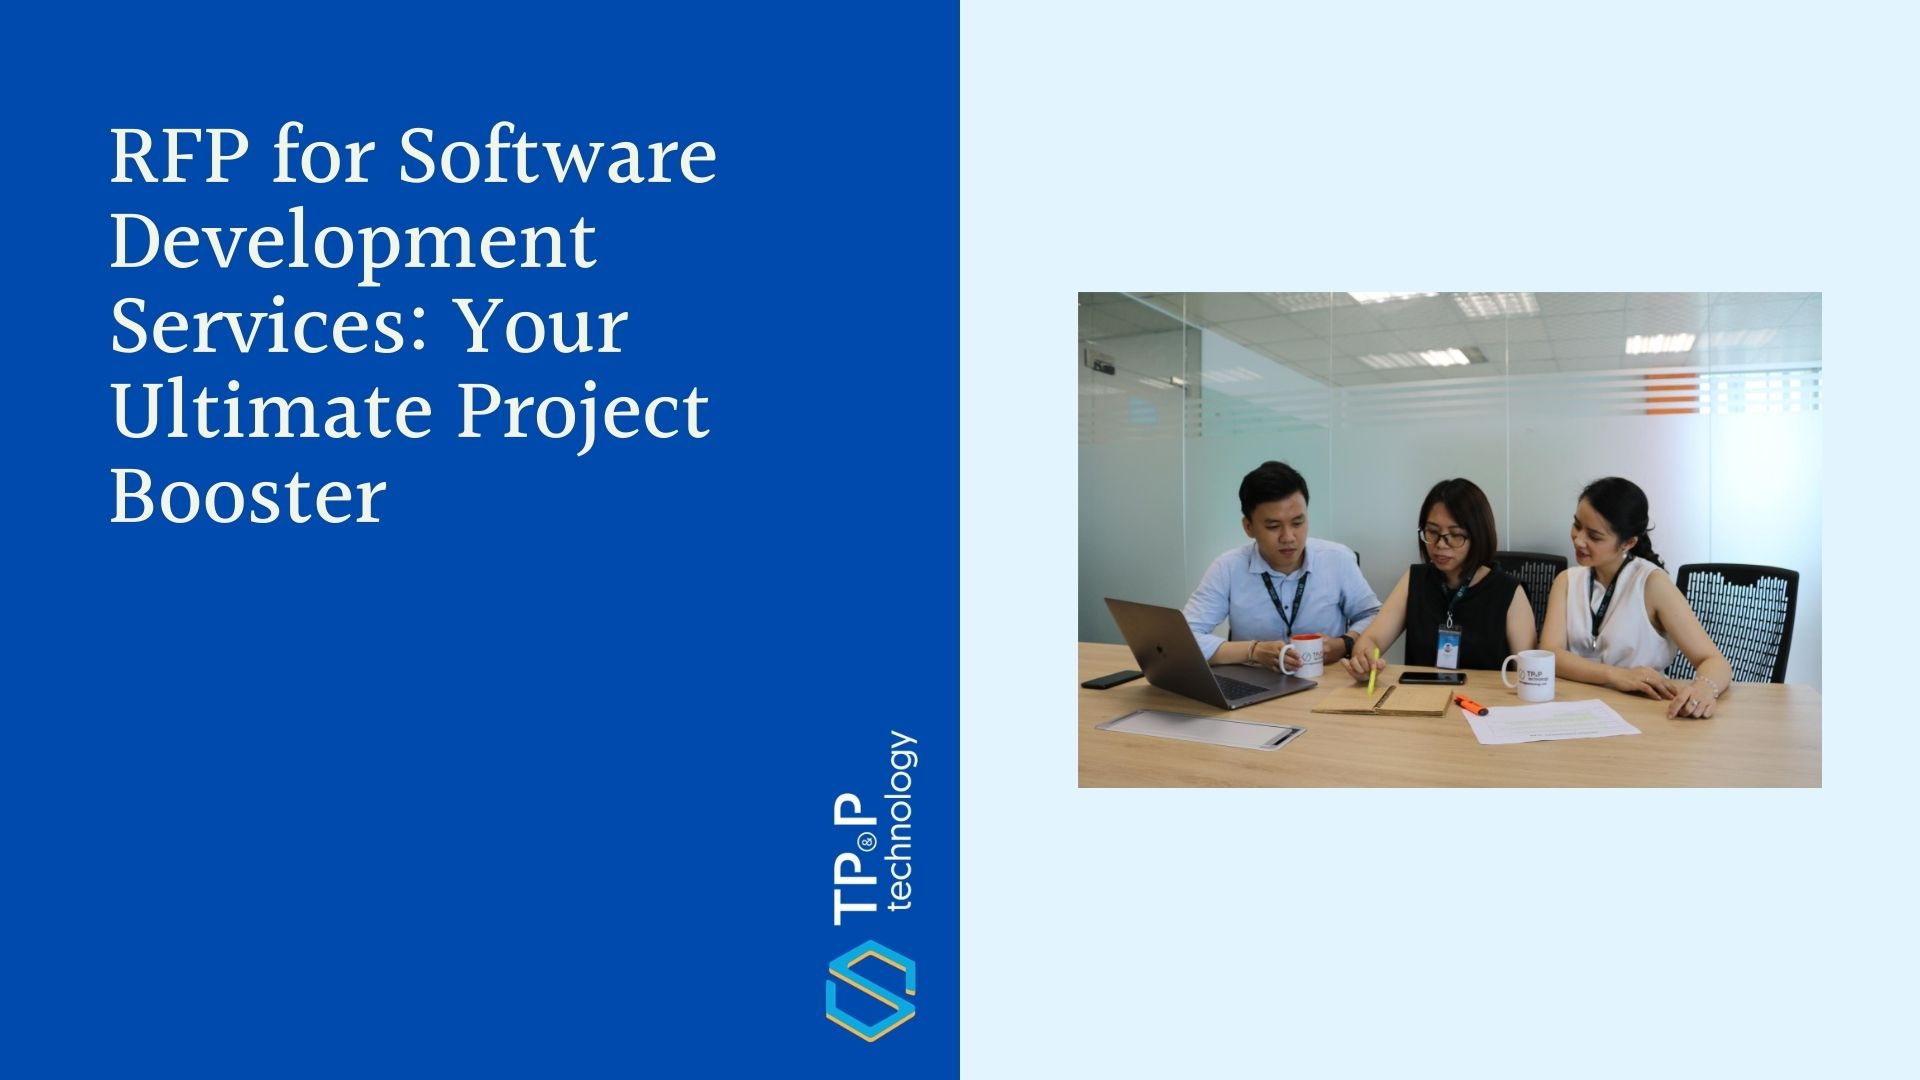 RFP for Software Development Services: Your Ultimate Project Booster